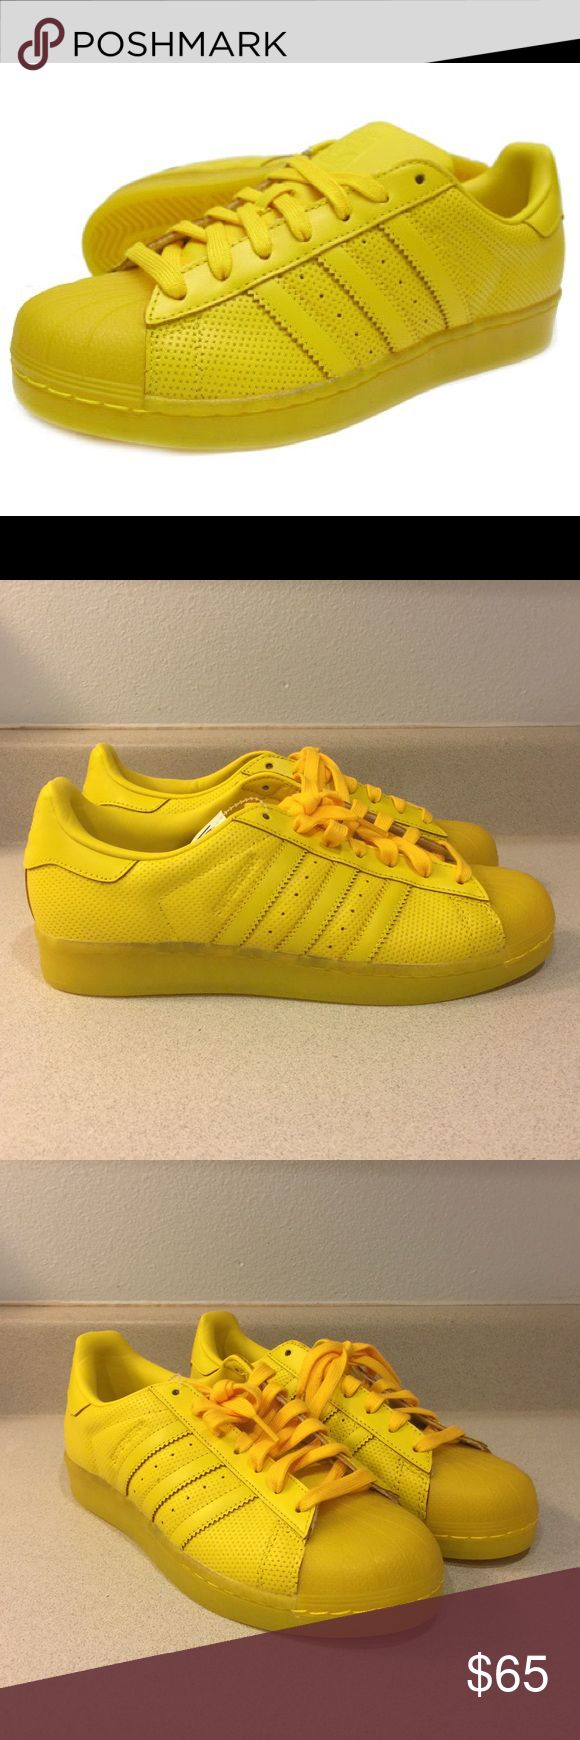 NWT Adidas Superstar Adicolor in YELLOW NWT Adidas Superstar Adicolor in YELLOW. Love these shoes; just don't find myself reaching for them. Theses are a Men's 8.5/Women's 10 Adidas Shoes Sneakers